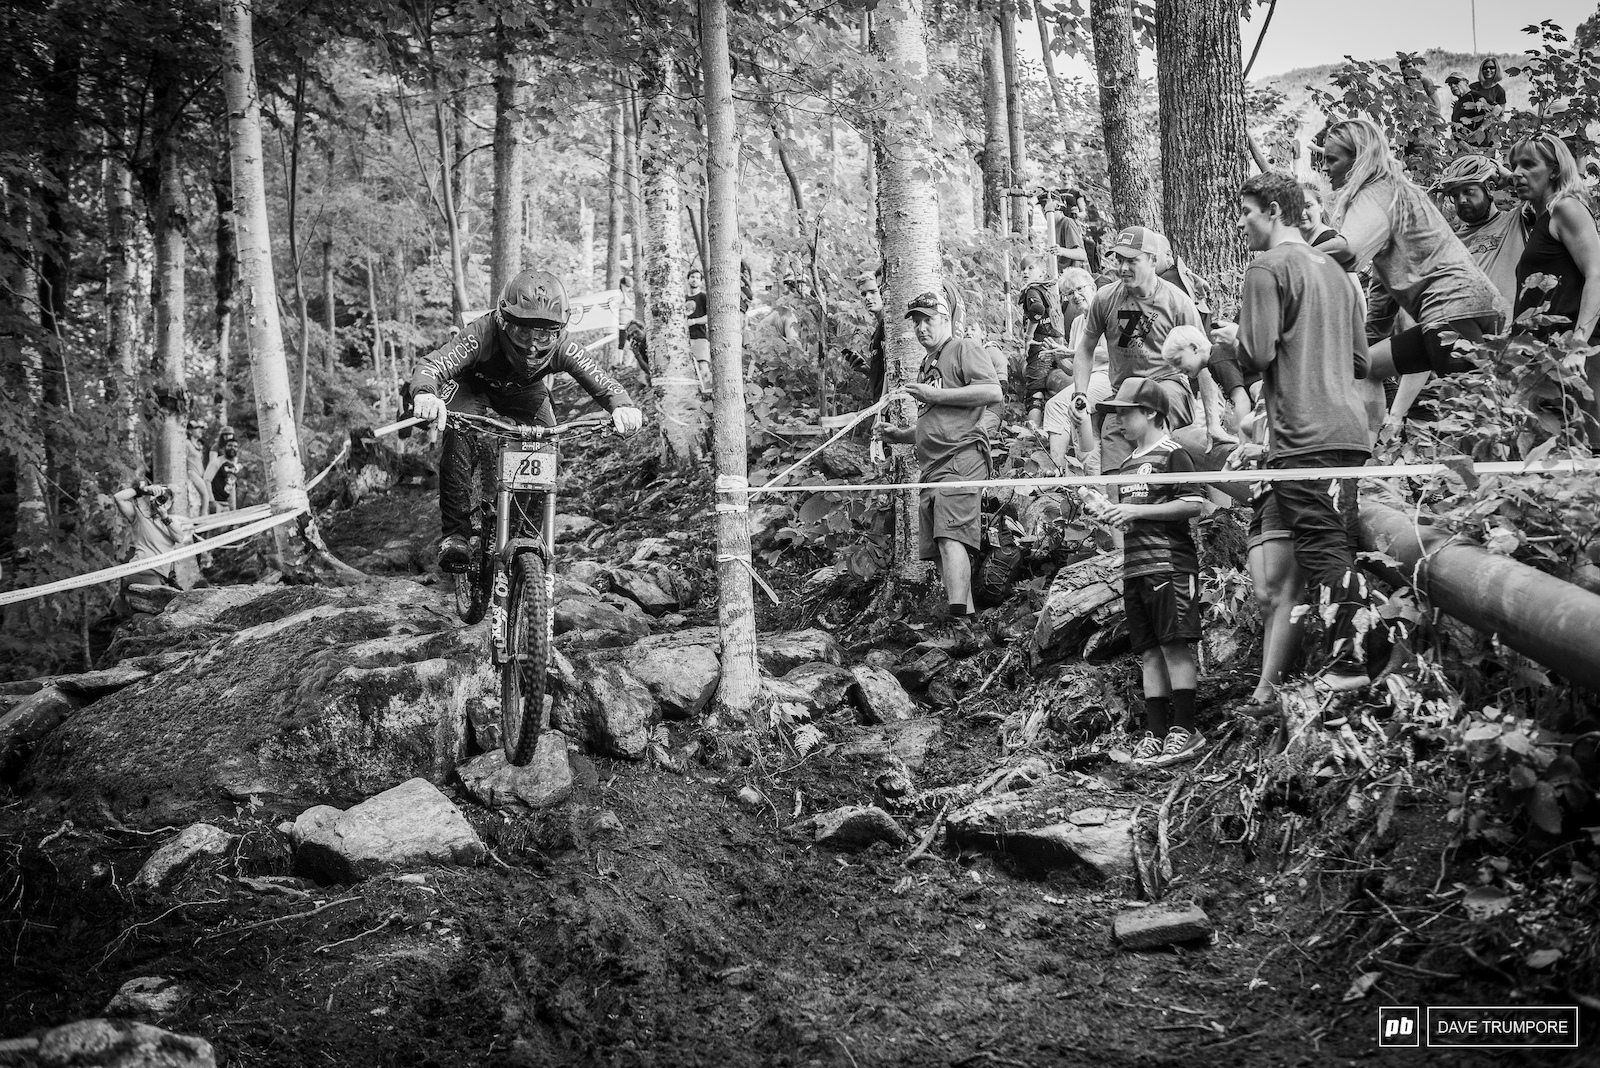 Jake Kahn cleans the last rock garden that claimed more than a few riders just 20 seconds from the finish line.